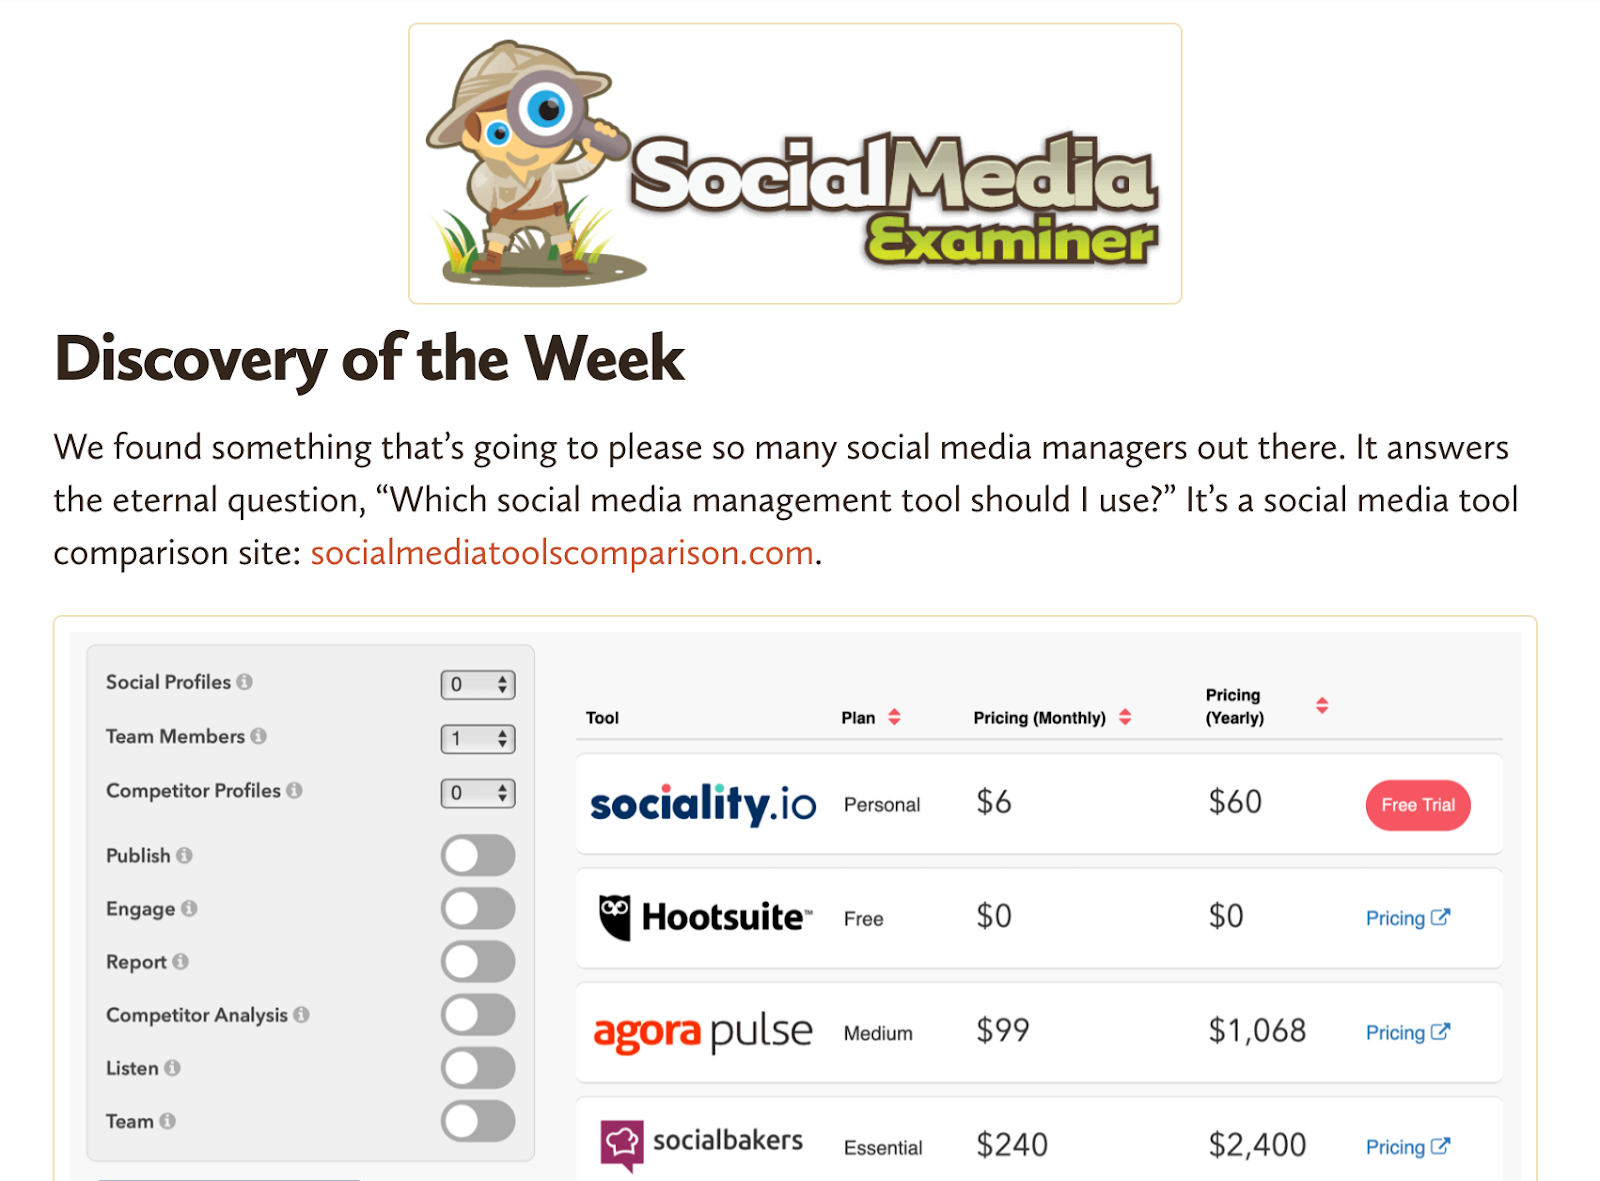 Social Media Examiner — Discovery of the week